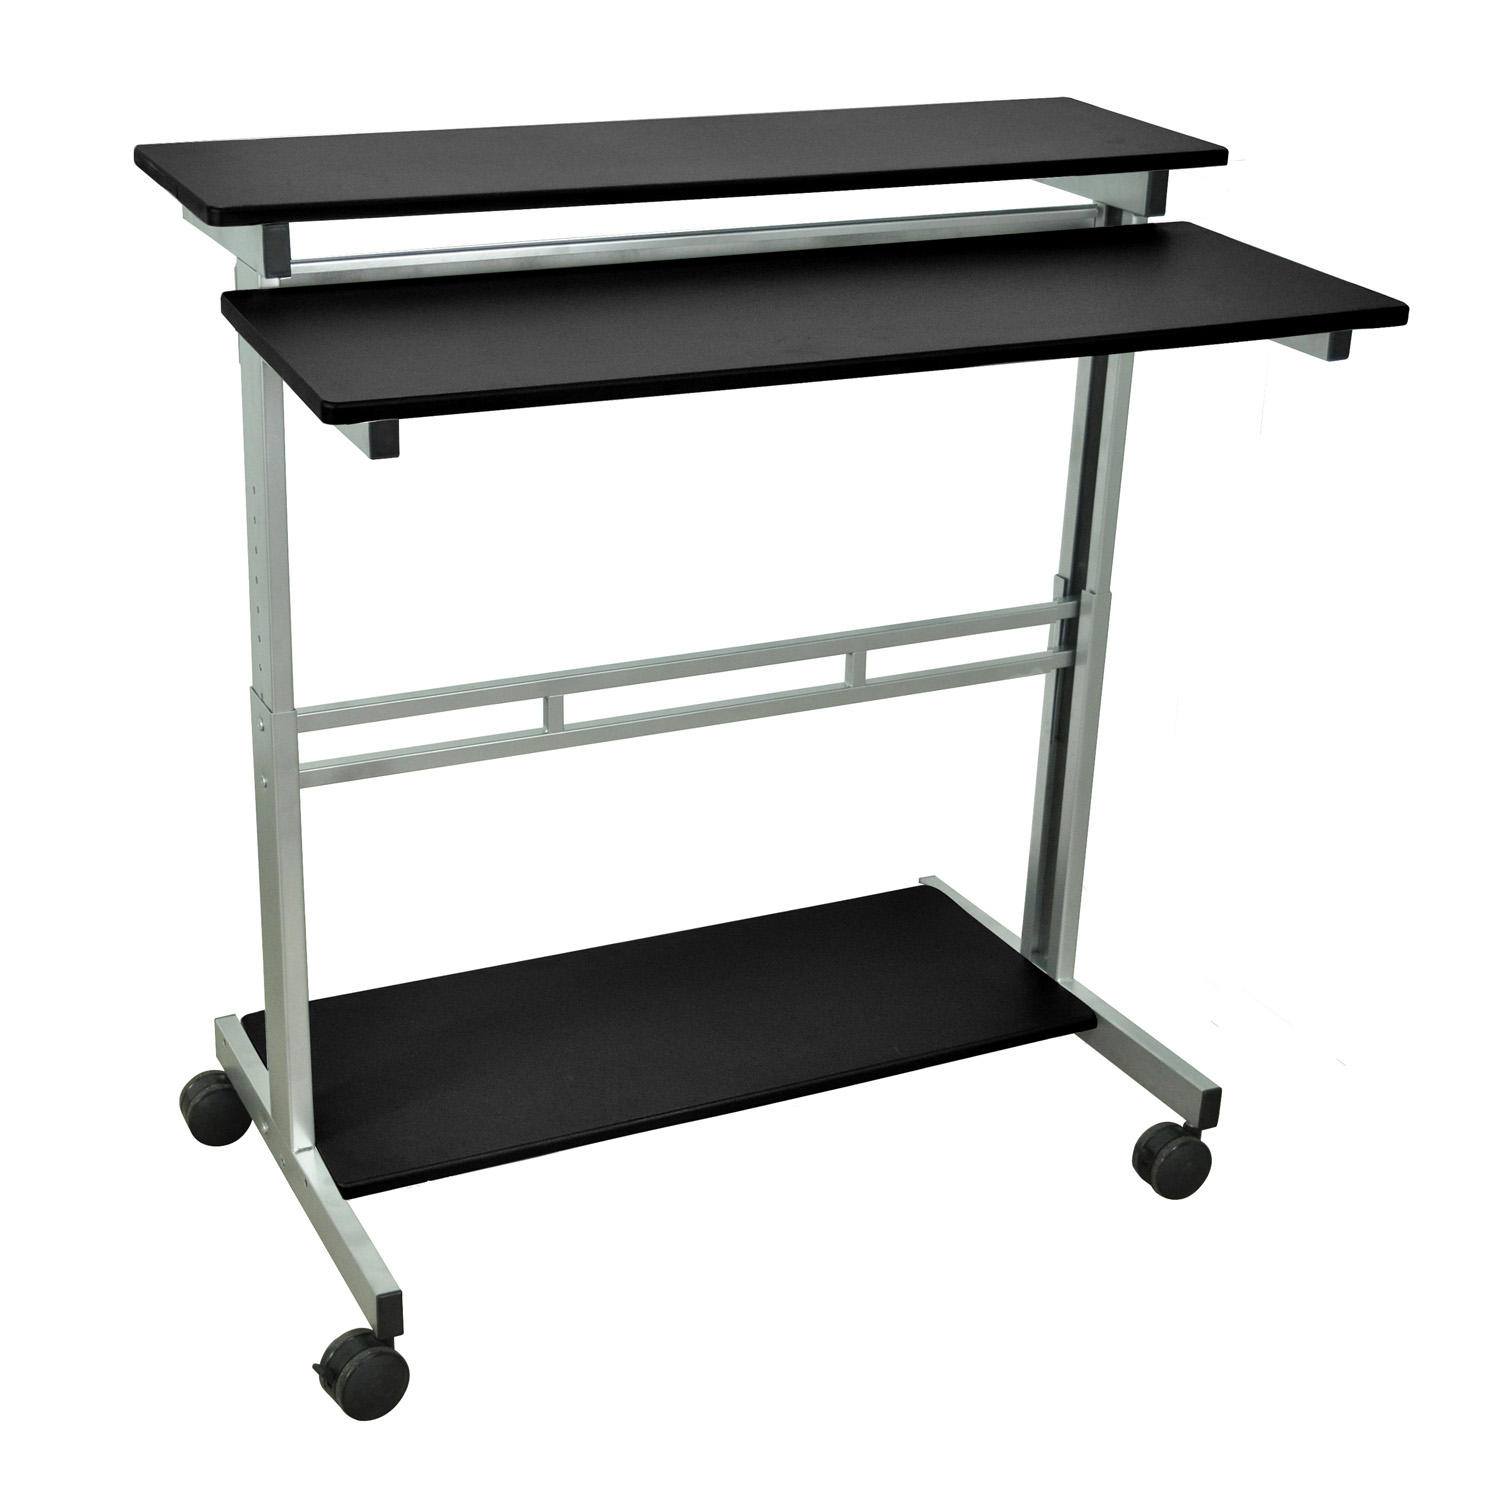 "Luxor 40"" Black Stand-Up Desk"